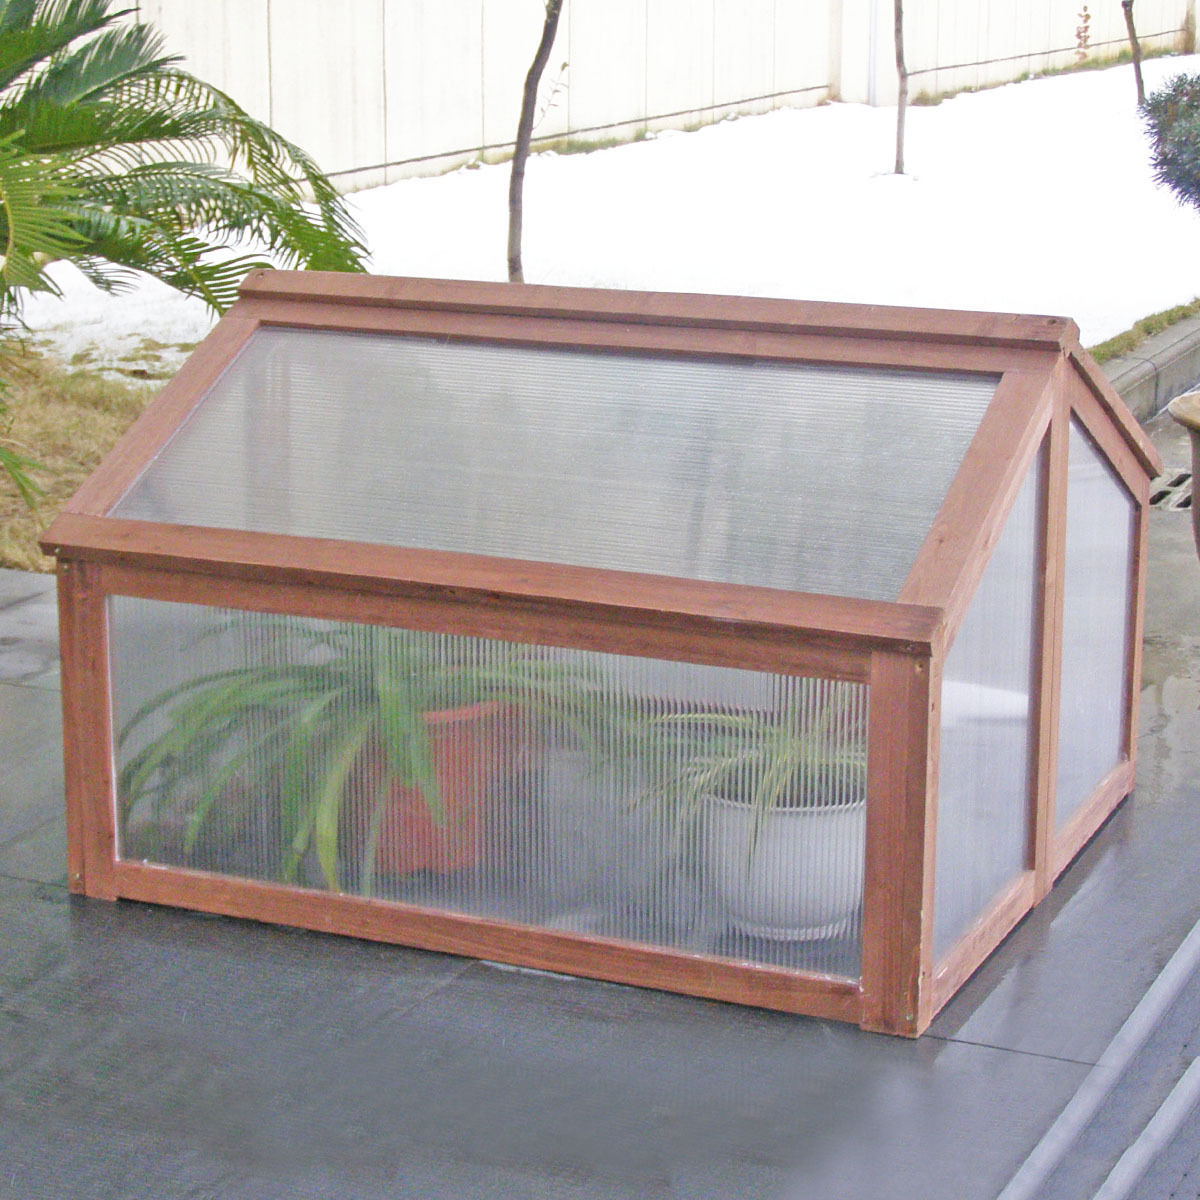 Costway Double Box Garden Wooden Green House Cold Frame Raised Plants Bed Protection